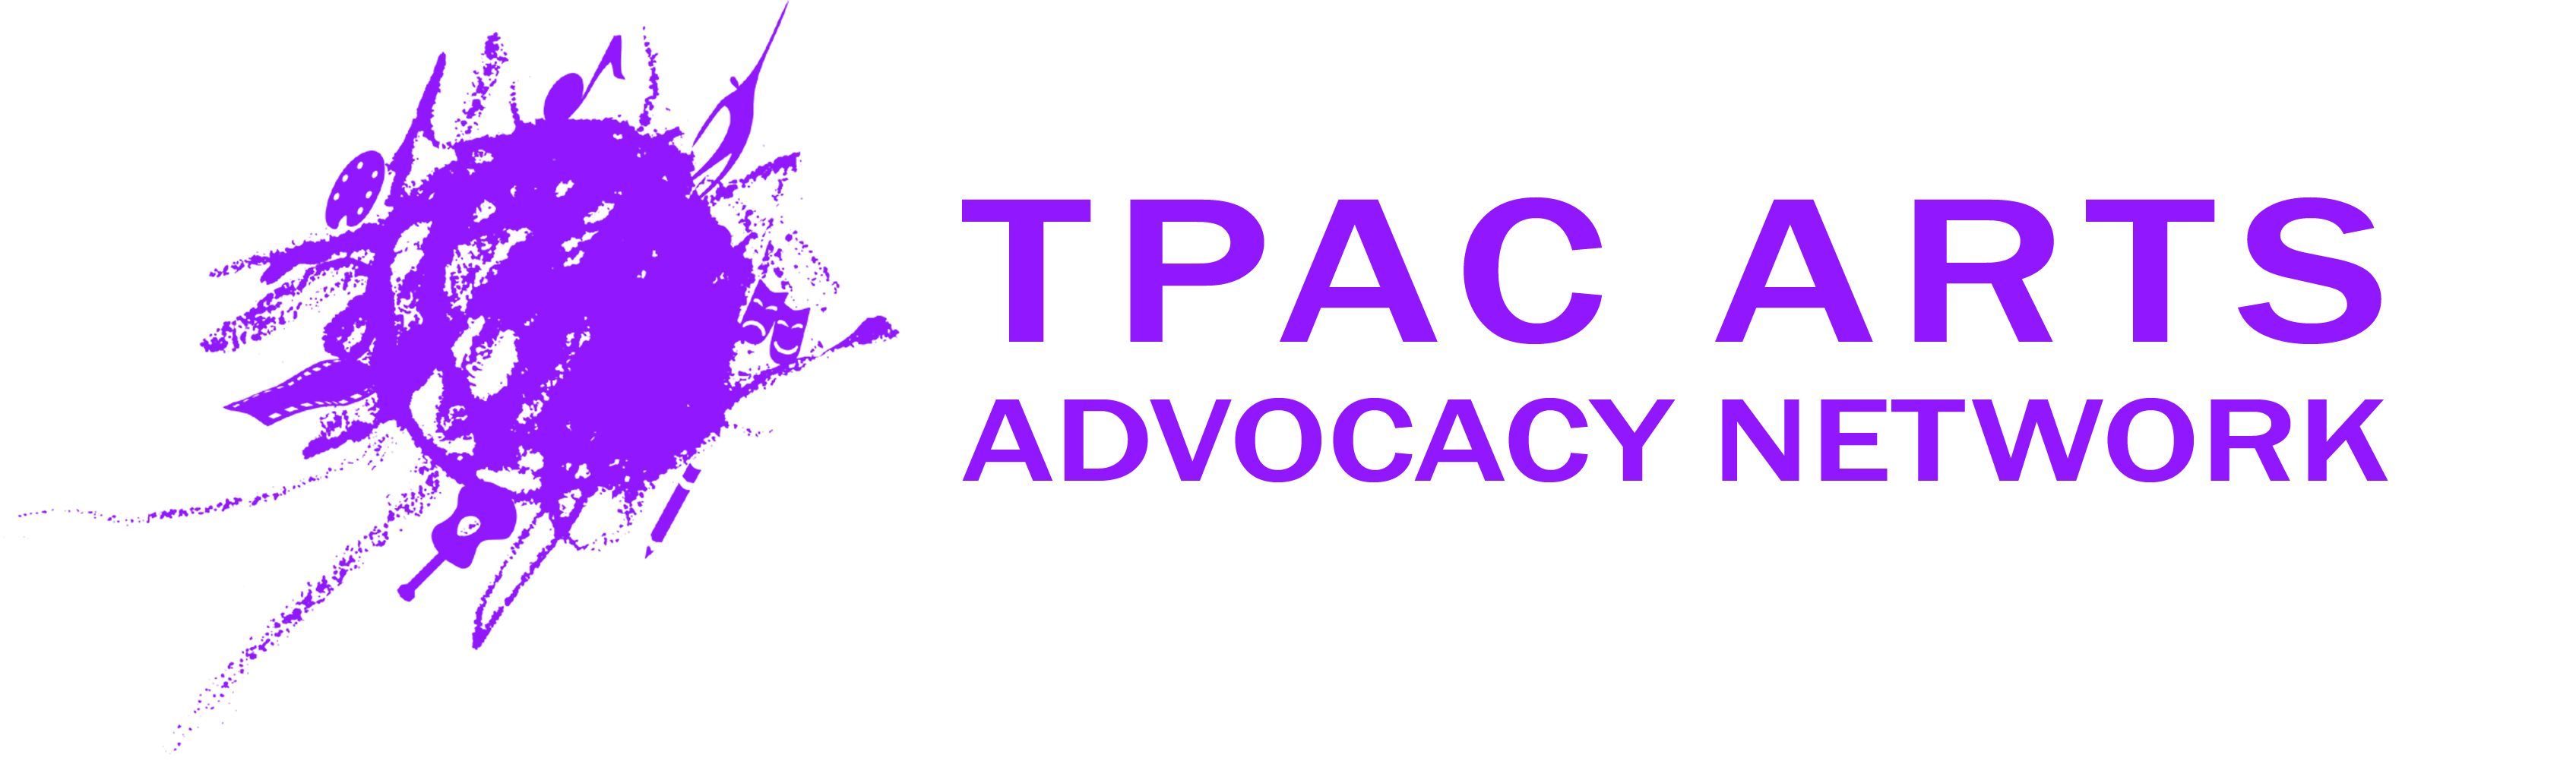 Call to Action for Tucson Advocates